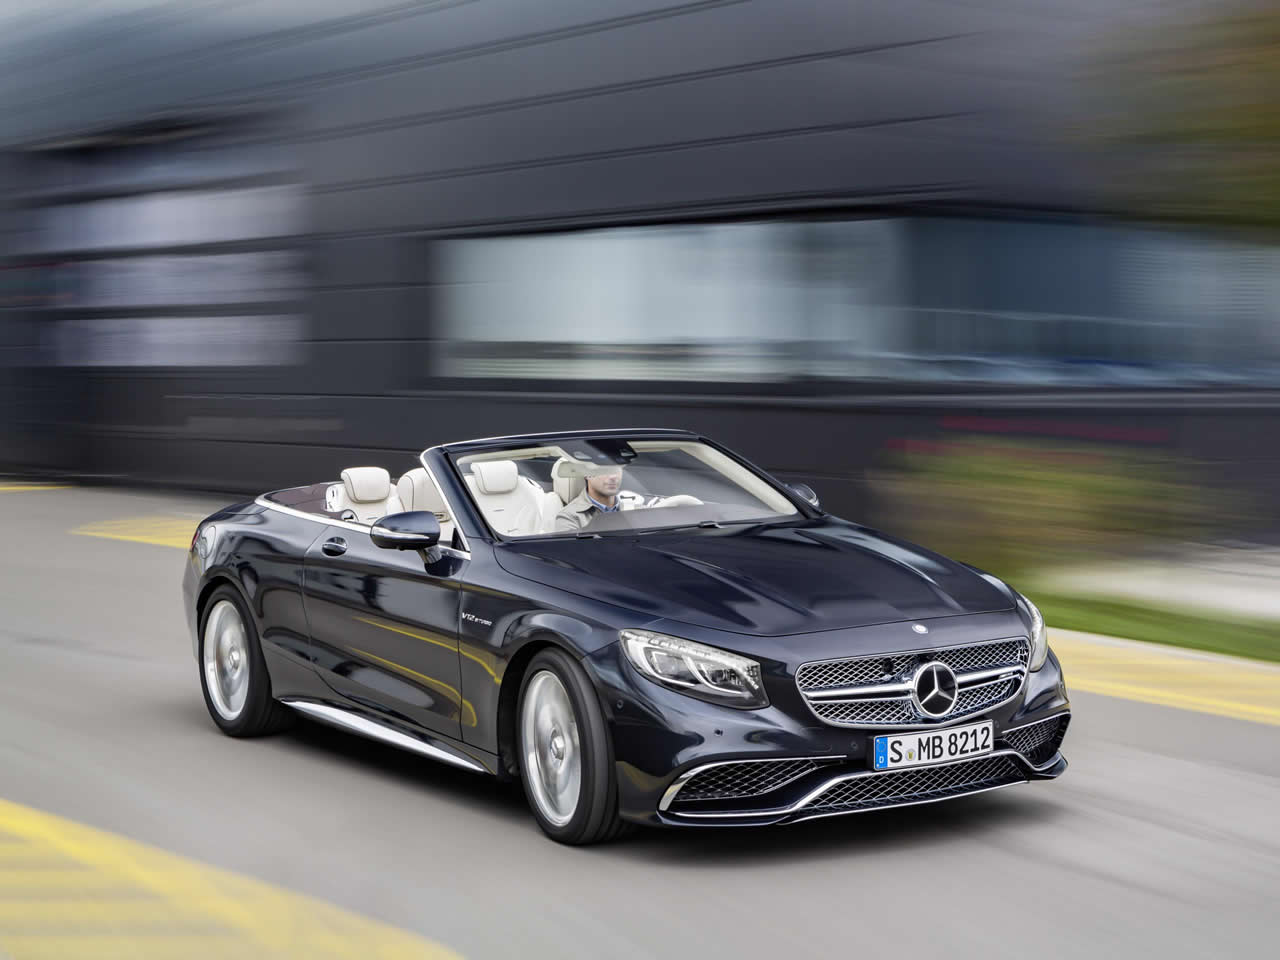 Mercedes benz s class amg cabriolet buying guide for Buying a mercedes benz